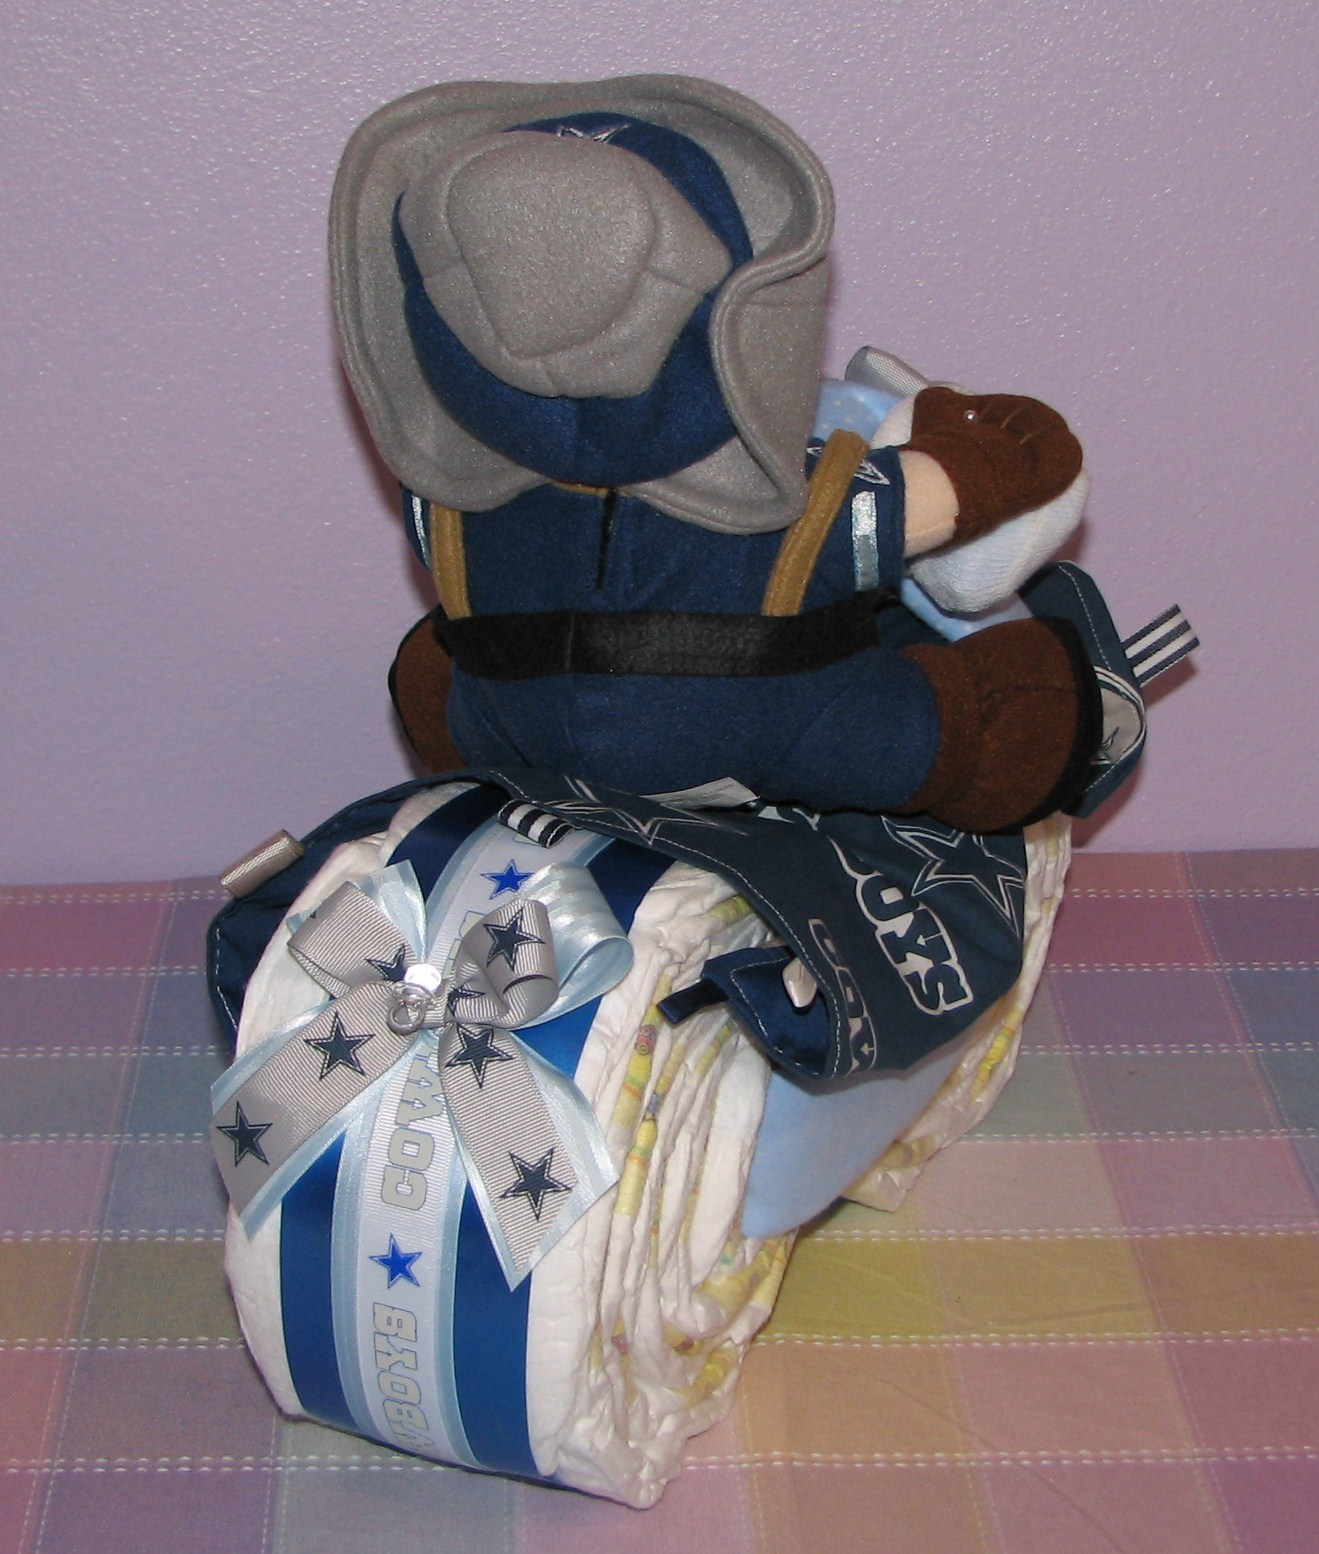 Cowboys-Diaper-Motorcycle1.JPG - Dallas Cowboys Diaper Motorcycles